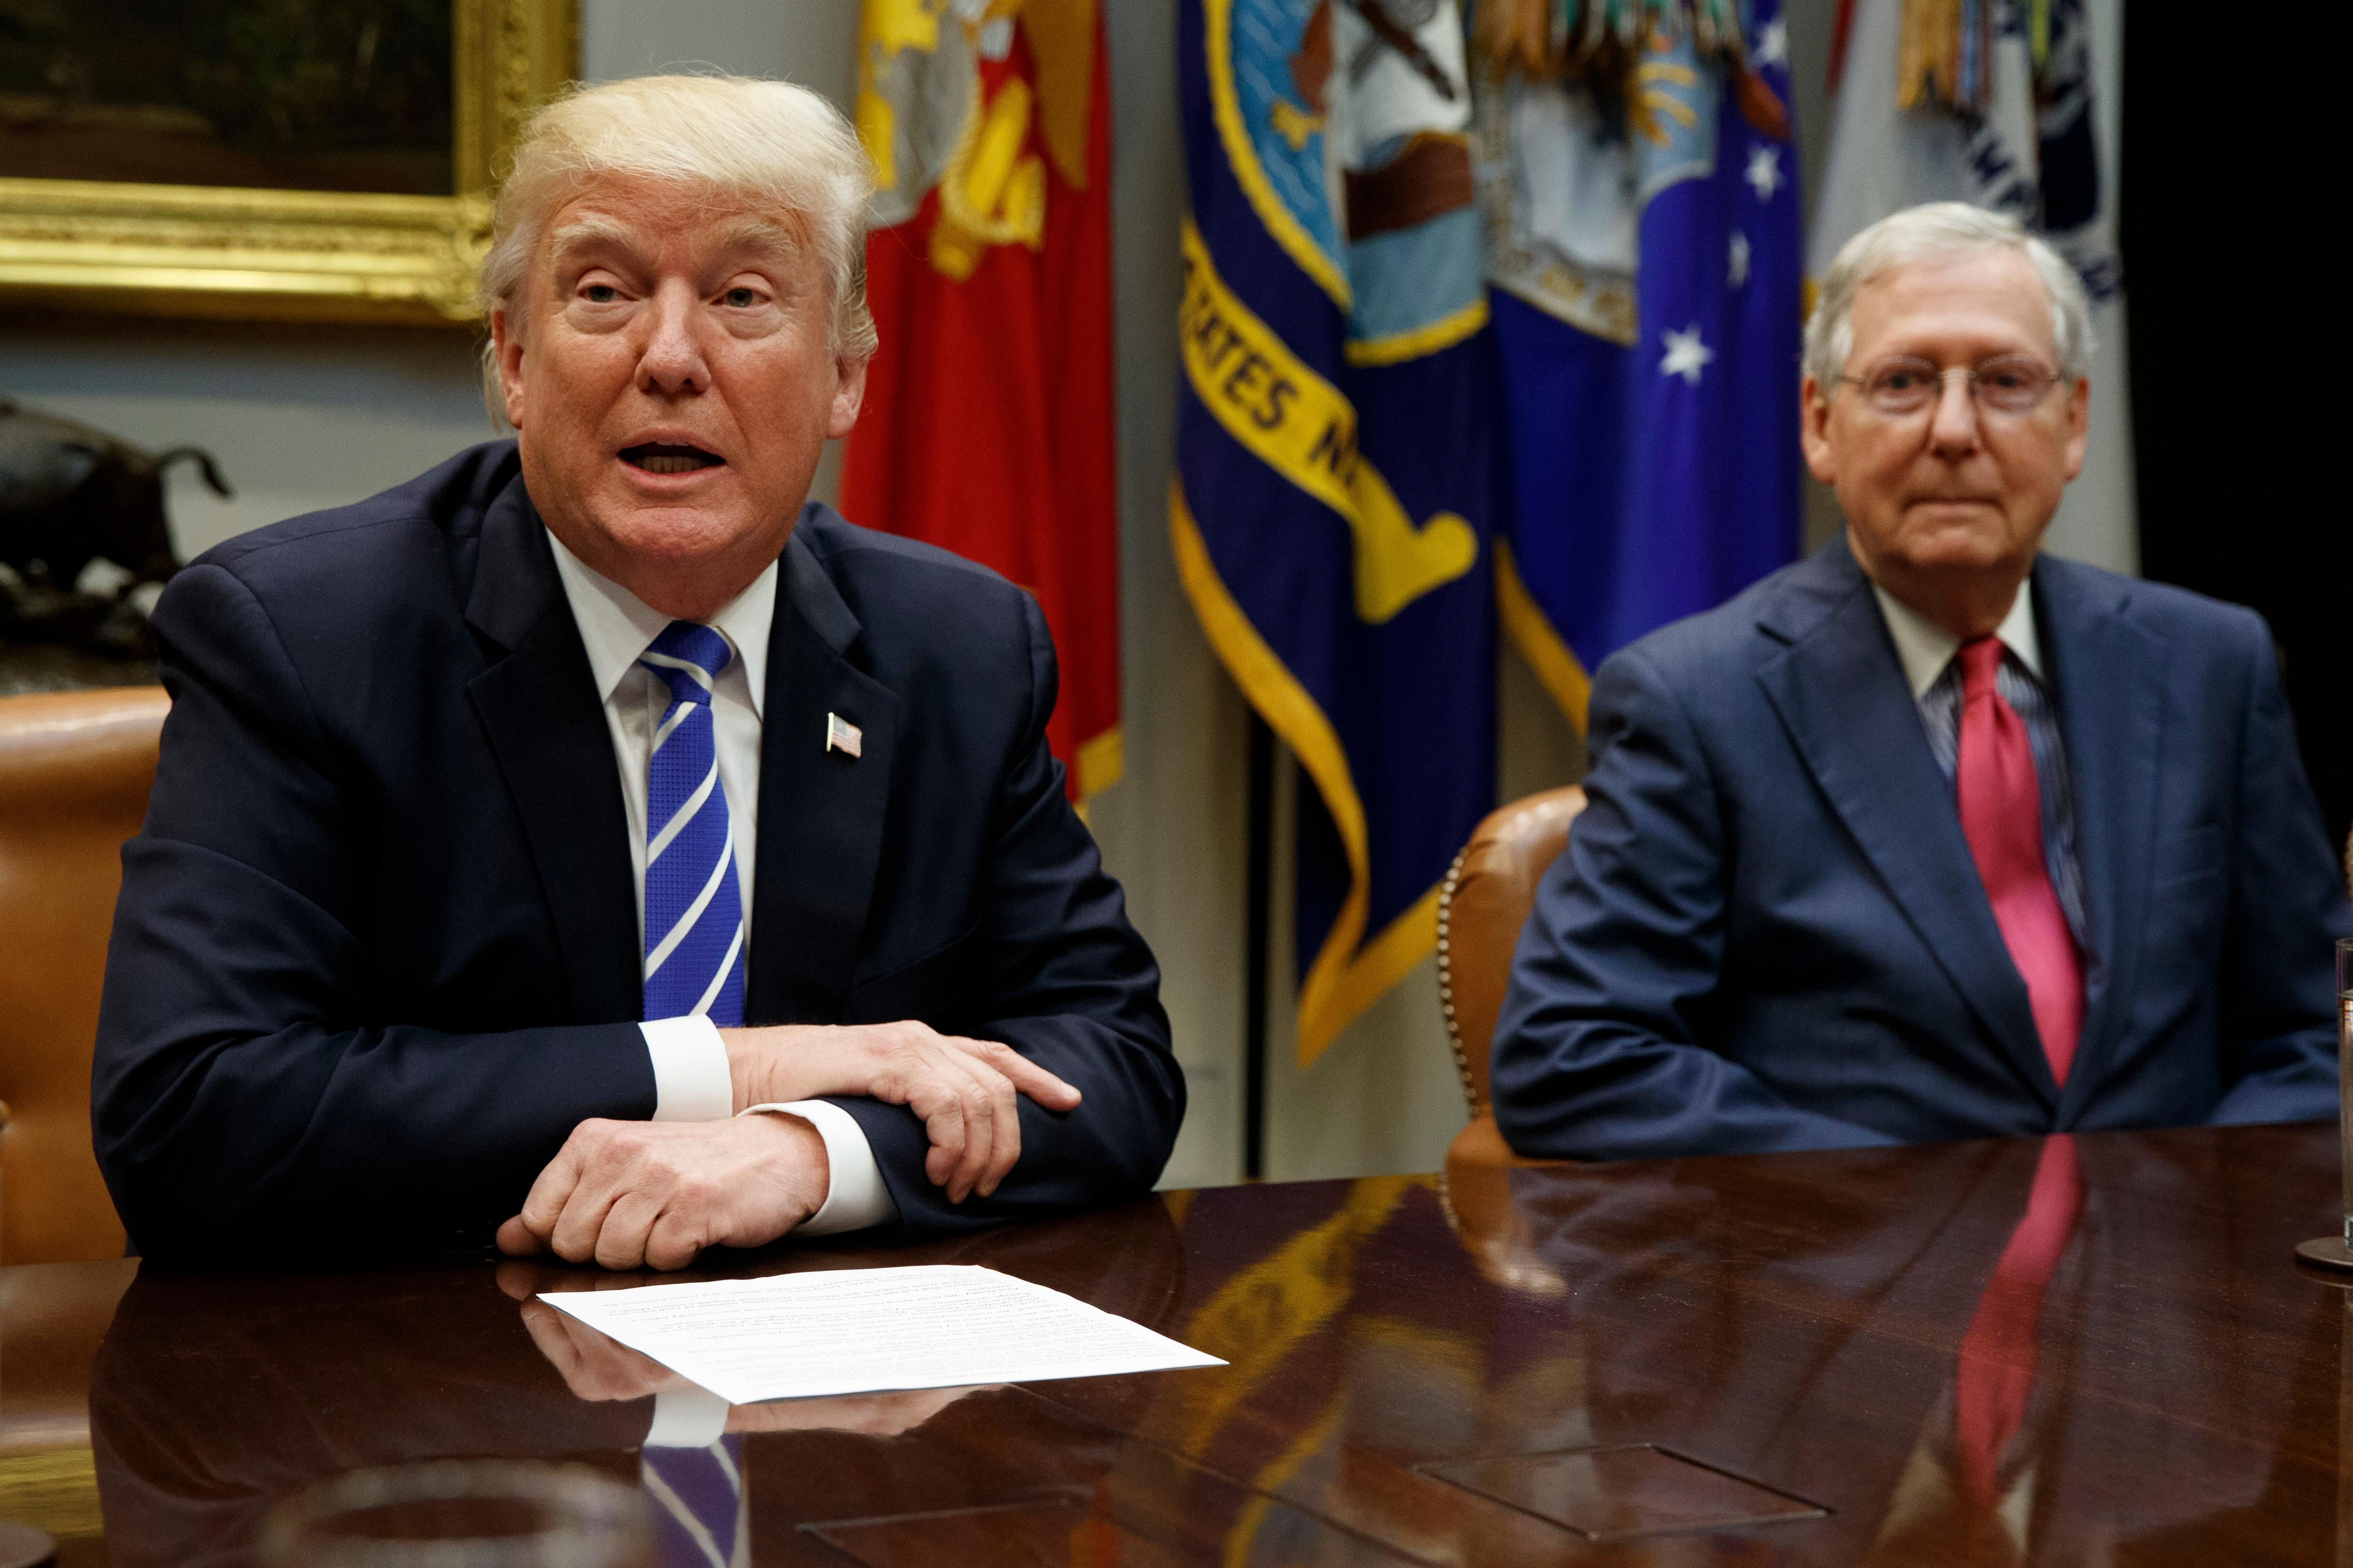 Senate Majority Leader Mitch McConnell, R-Ky., right, listens as President Donald Trump speaks during a meeting with congressional leaders and administration officials on tax reform, in the Roosevelt Room of the White House, Tuesday, Sept. 5, 2017, in Washington. (AP Photo/Evan Vucci)